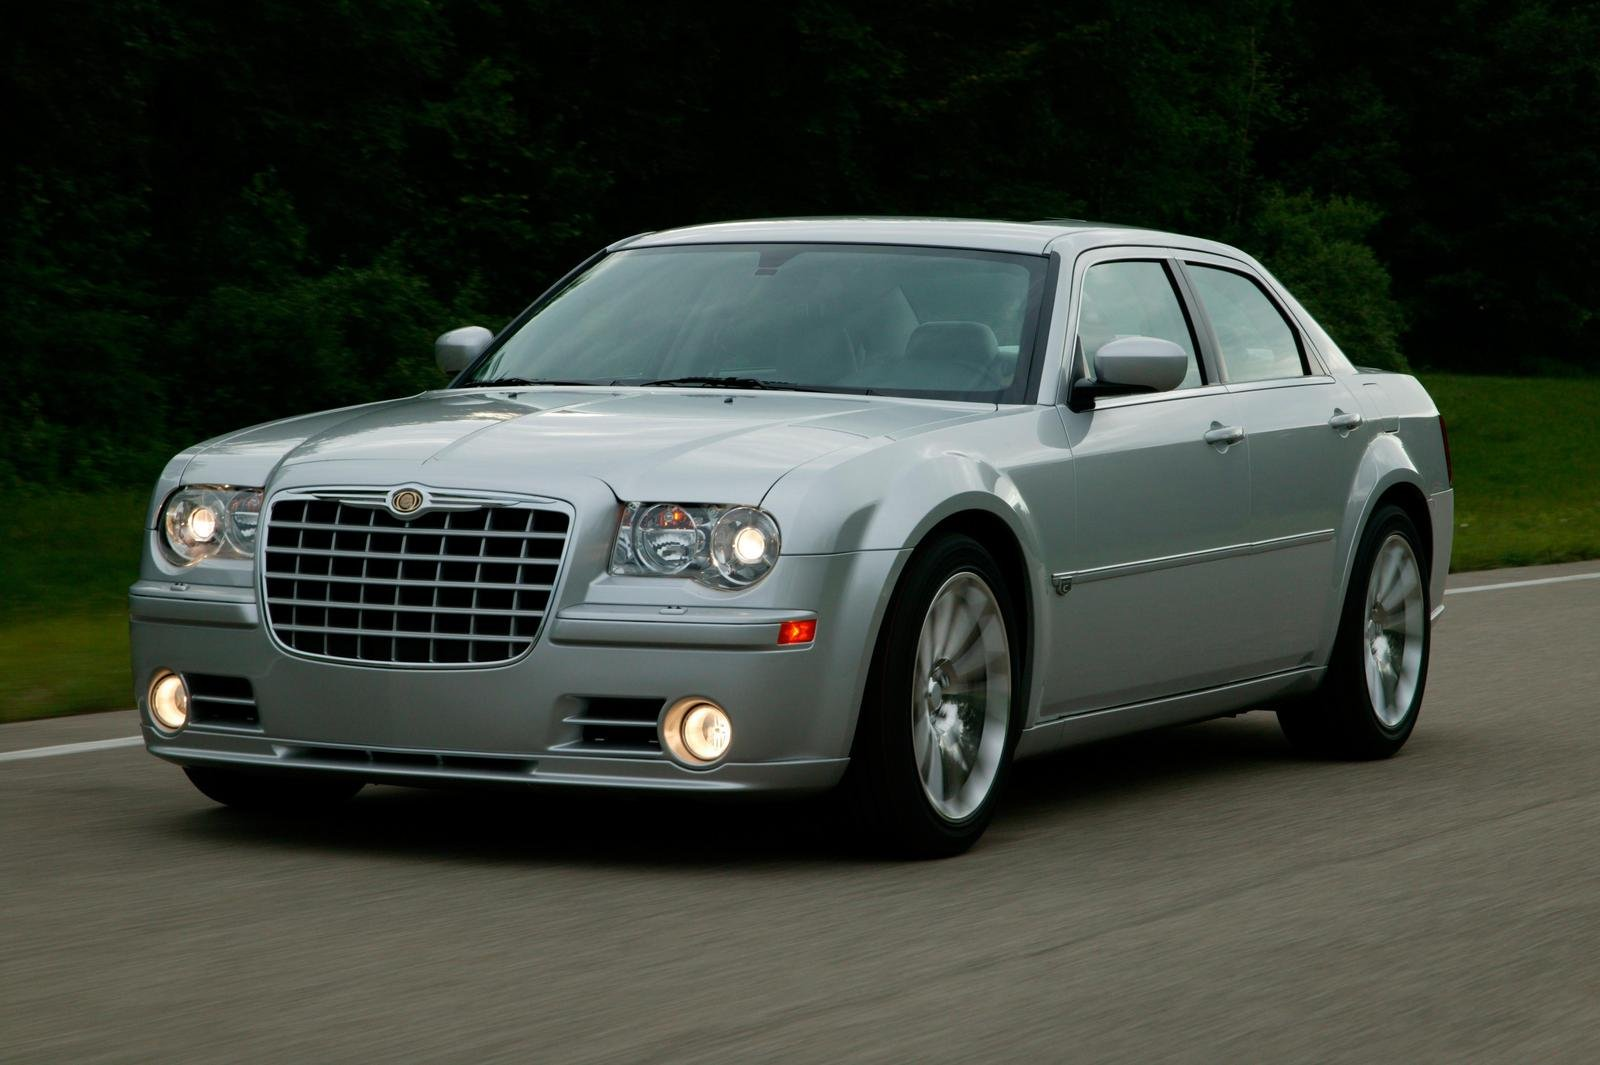 2007 chrysler 300c srt8 picture 42534 car review top. Black Bedroom Furniture Sets. Home Design Ideas